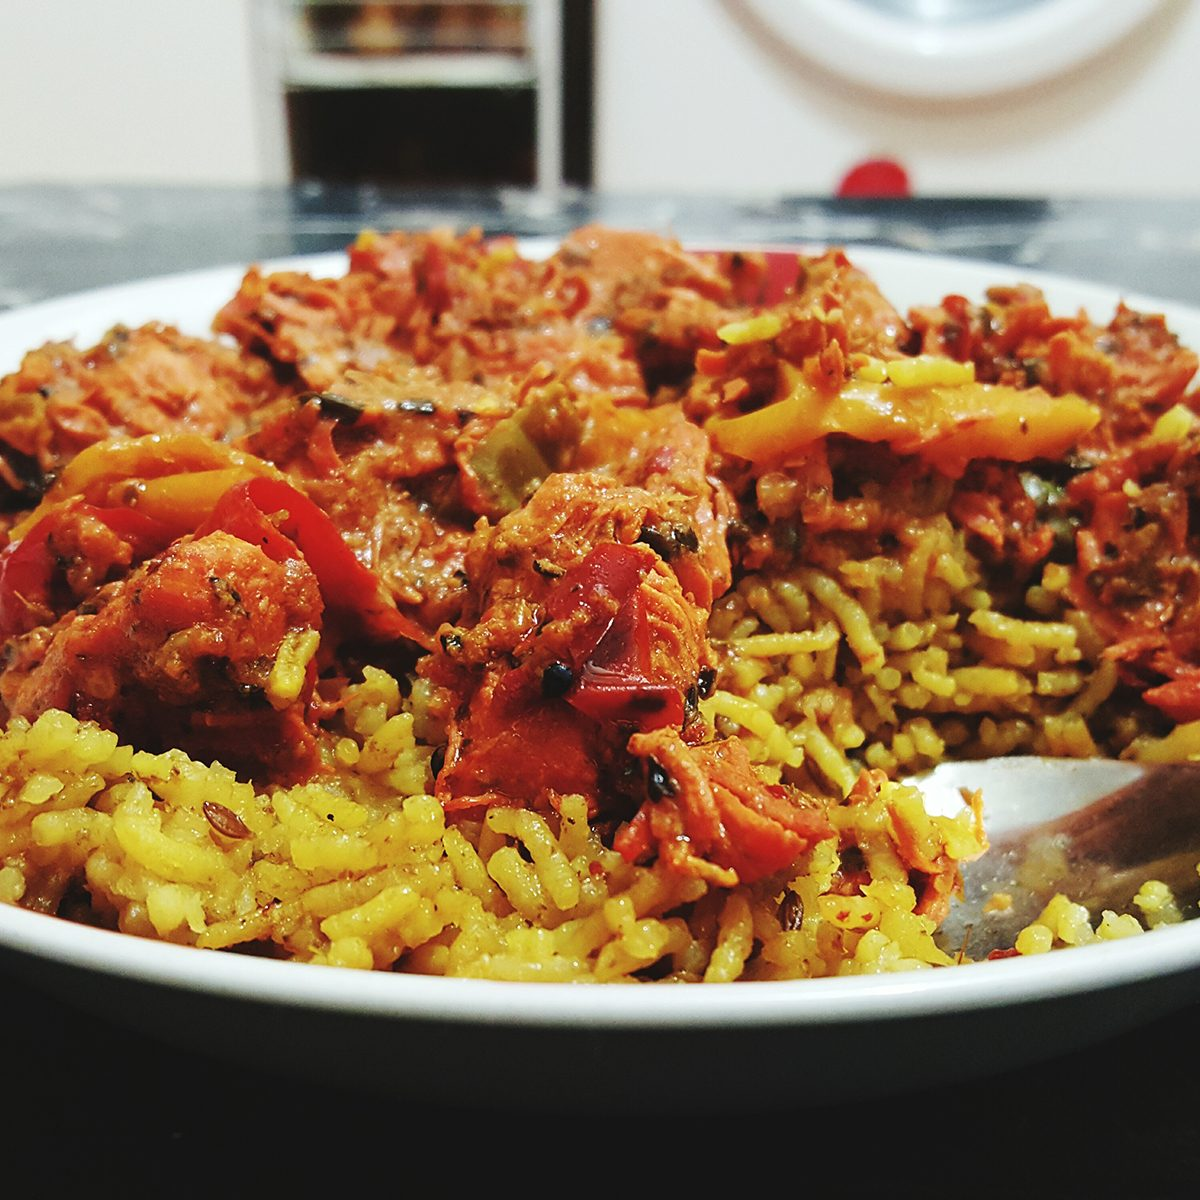 indian main dishes Chicken Jalfrezi And Basmati Rice Served In Plate On Table